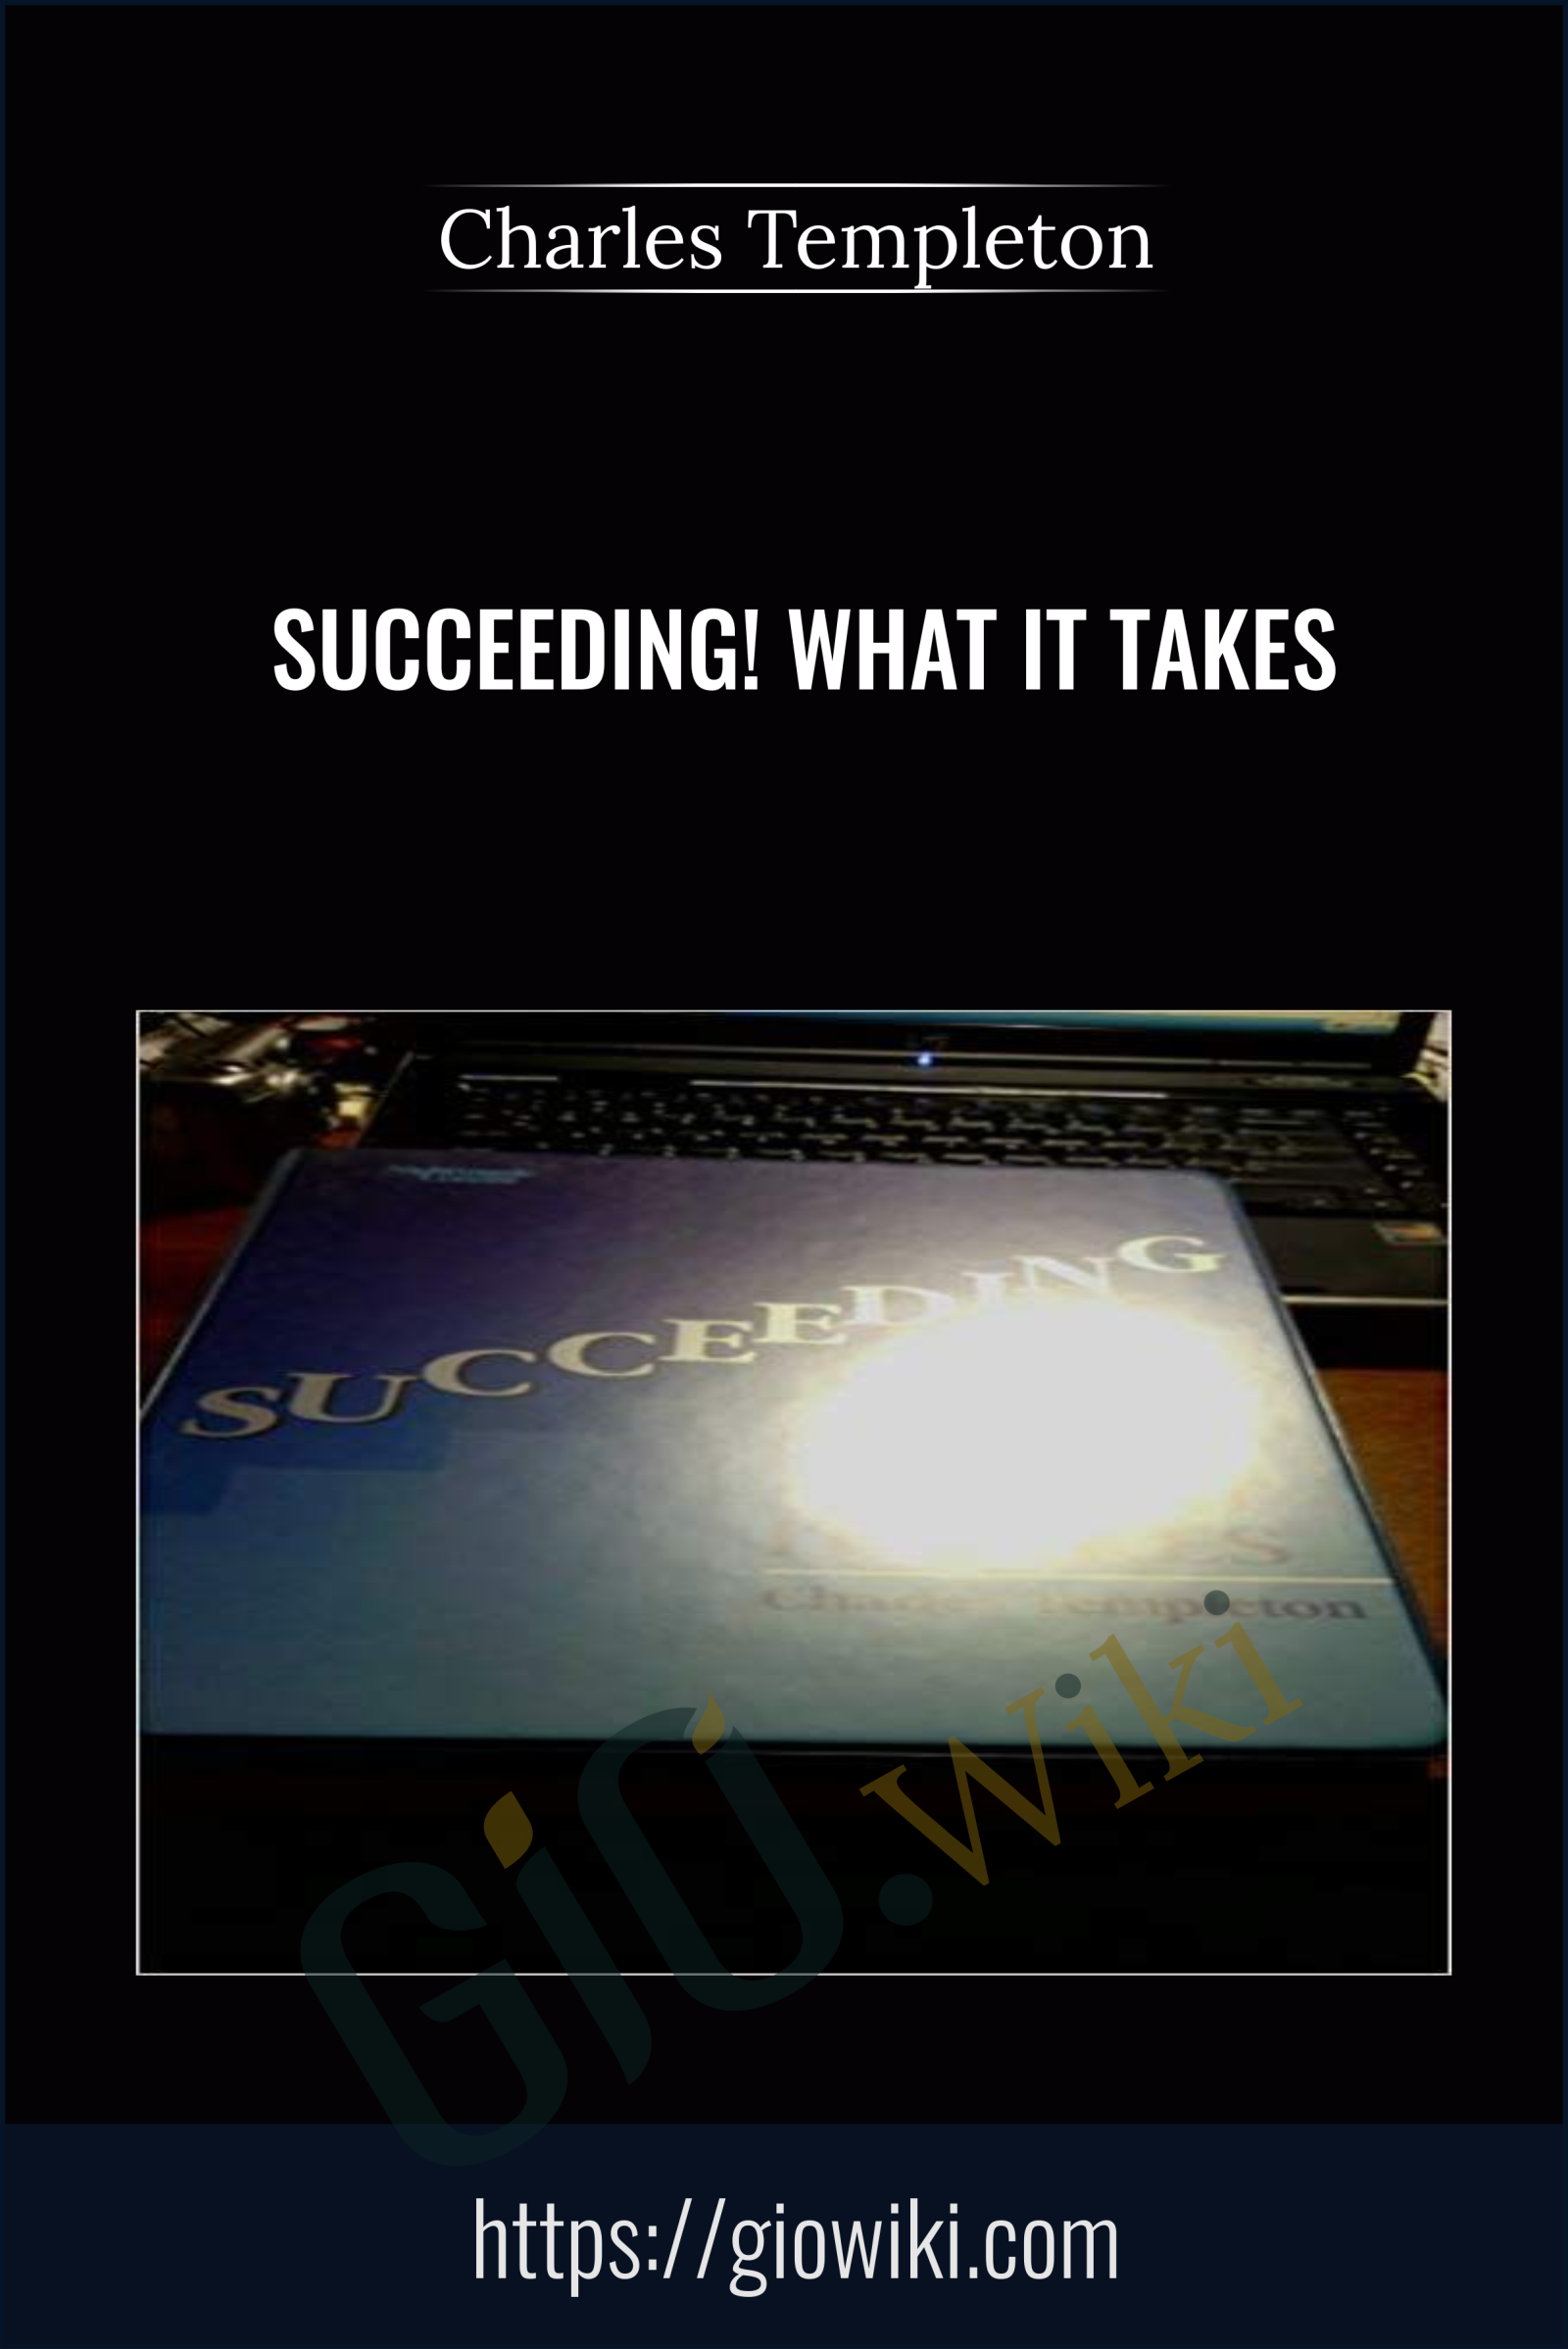 Succeeding! What it Takes - Charles Templeton